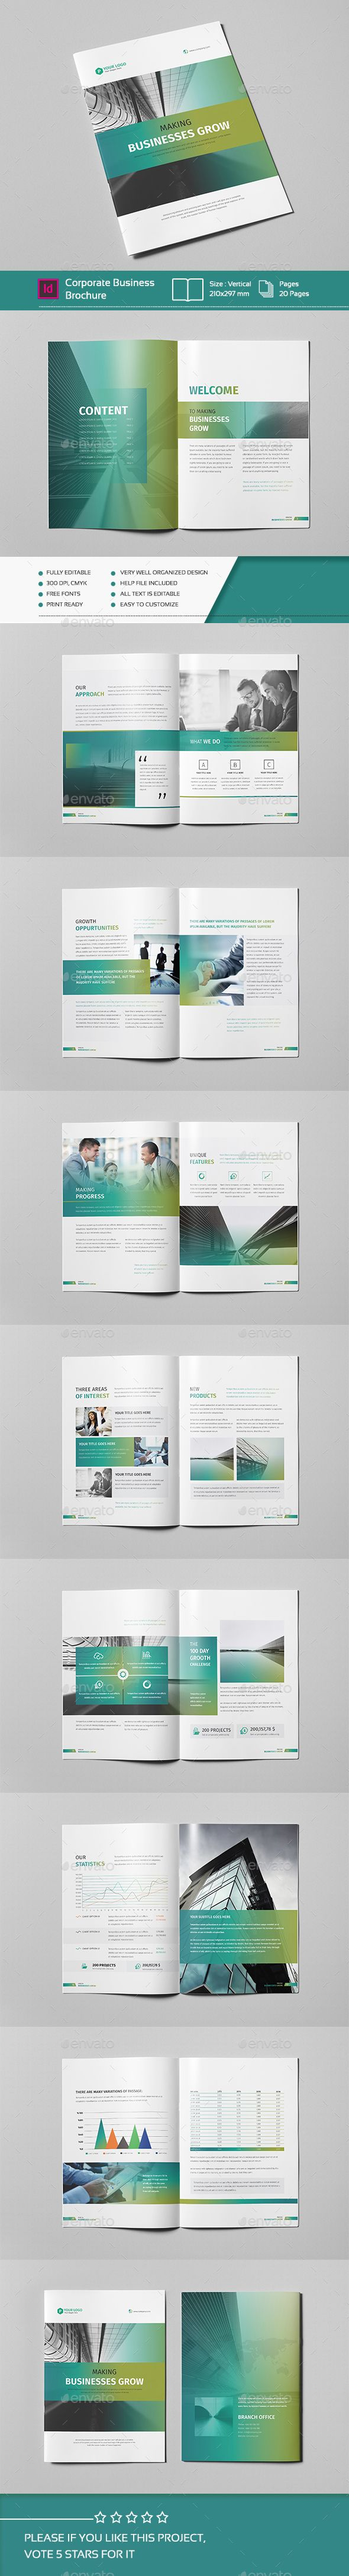 Corporate Business Brochure 20 Pages A4 Template Indesign Indd Design Download Http